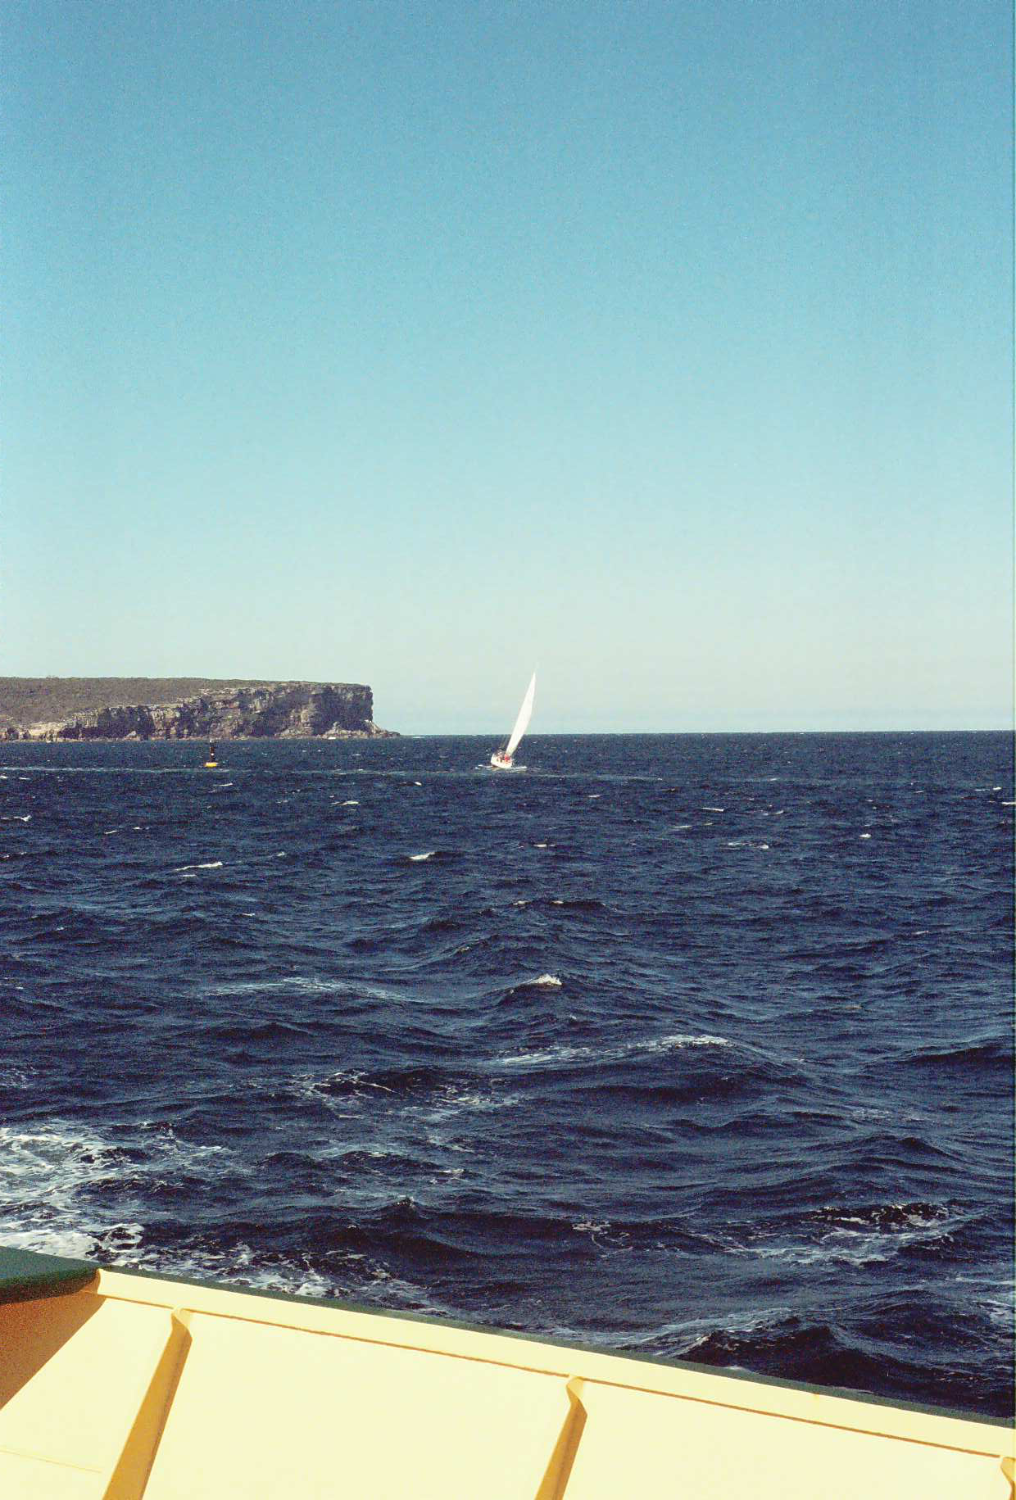 Towards Sydney Heads